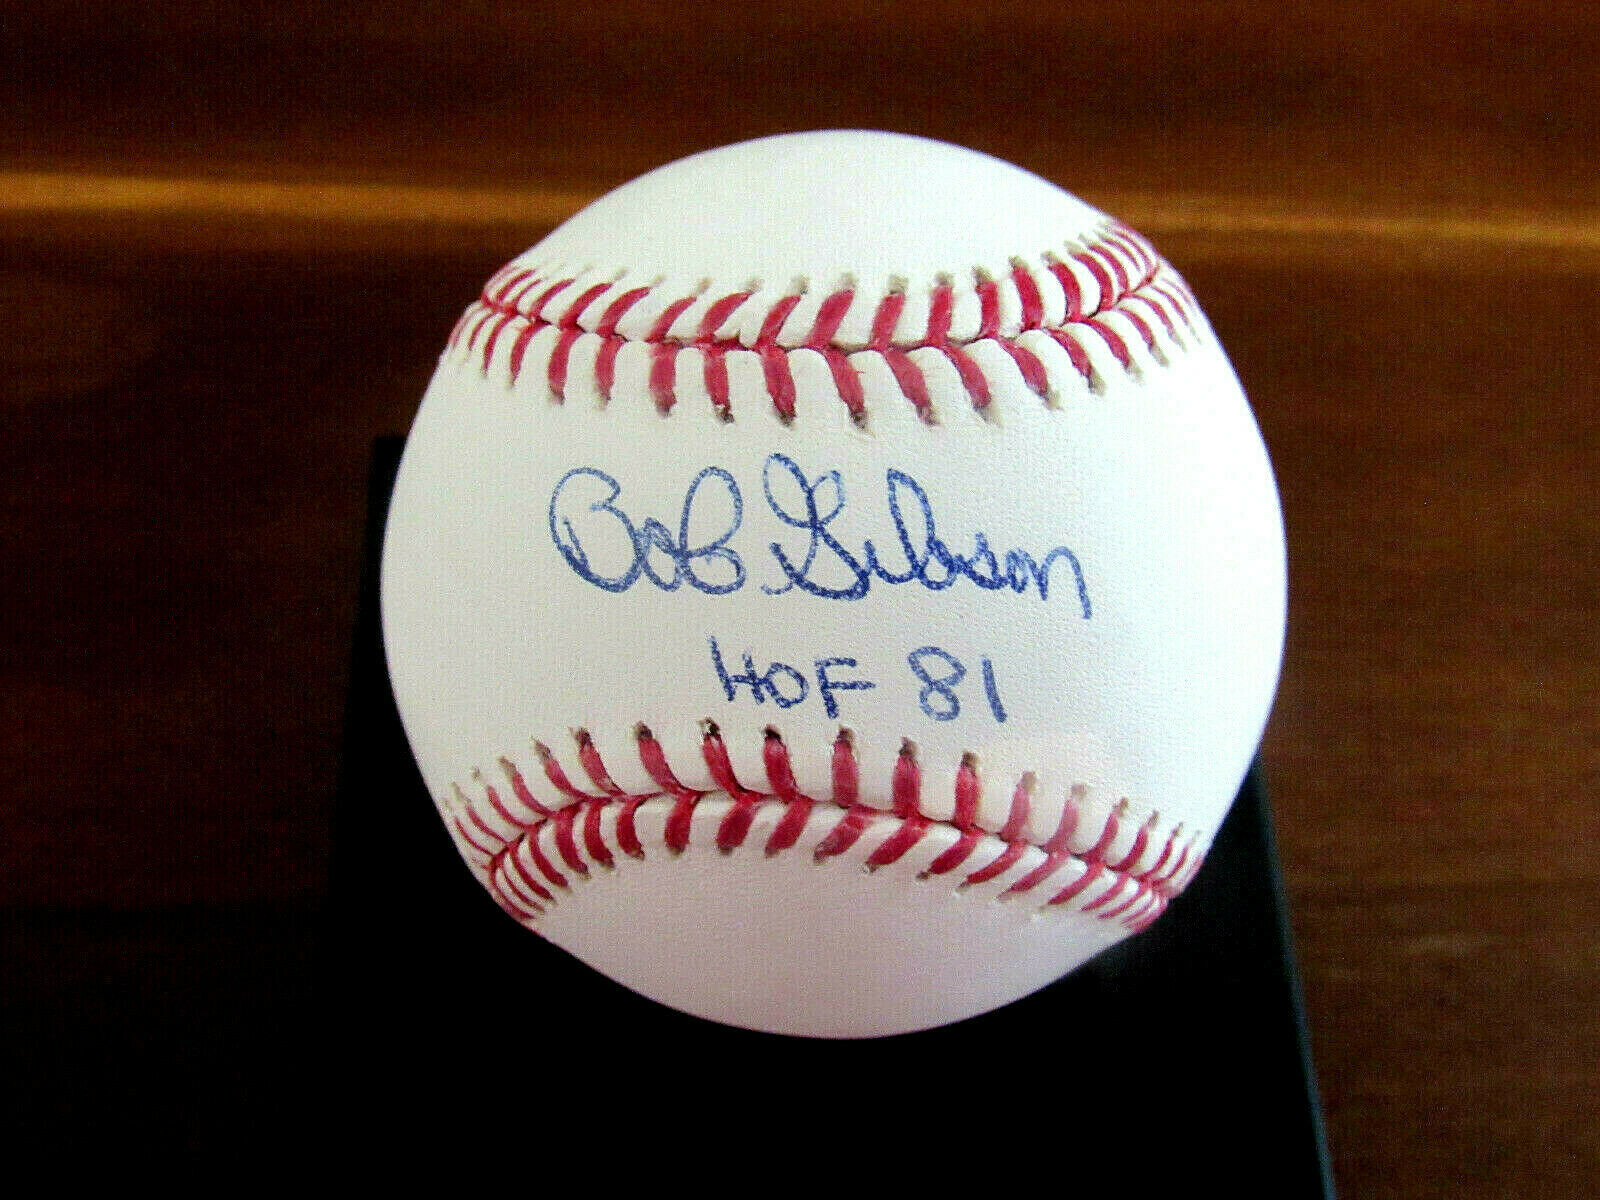 Primary image for BOB GIBSON HOF 81 ST. LOUIS CARDINALS SIGNED AUTO OML BASEBALL JSA AUTHENTIC GEM